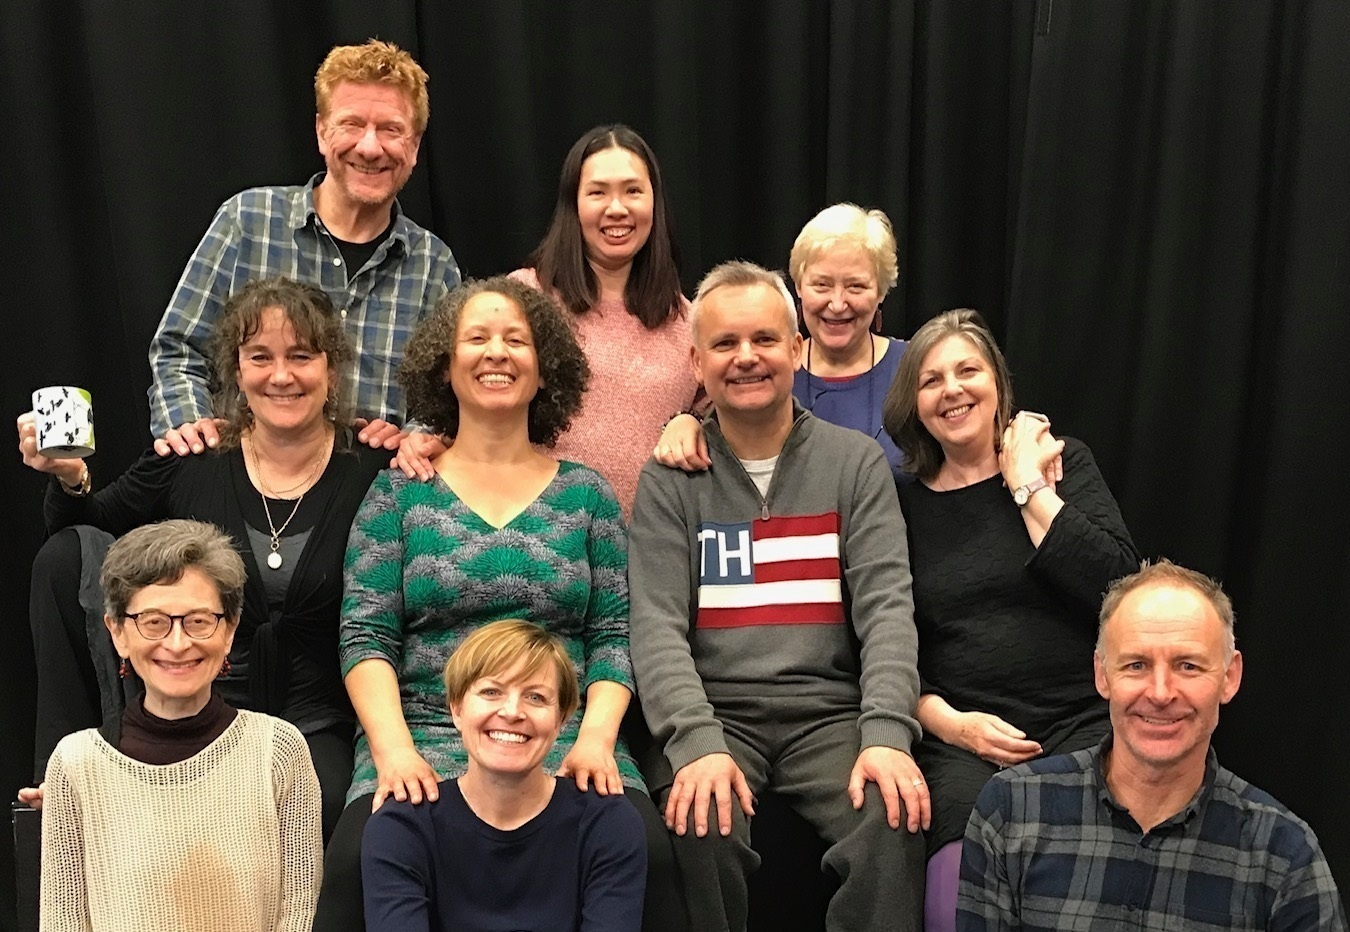 SPT UK Trainers : Top row left to right: Steve Nash, Agnes Law, Di Adderley. Middle row: Alison Fairlove, Rose Thorn, Simon Floodgate, Amanda Brown. Bottom row: Veronica Needa, Davina Holms, Andrew Gray.